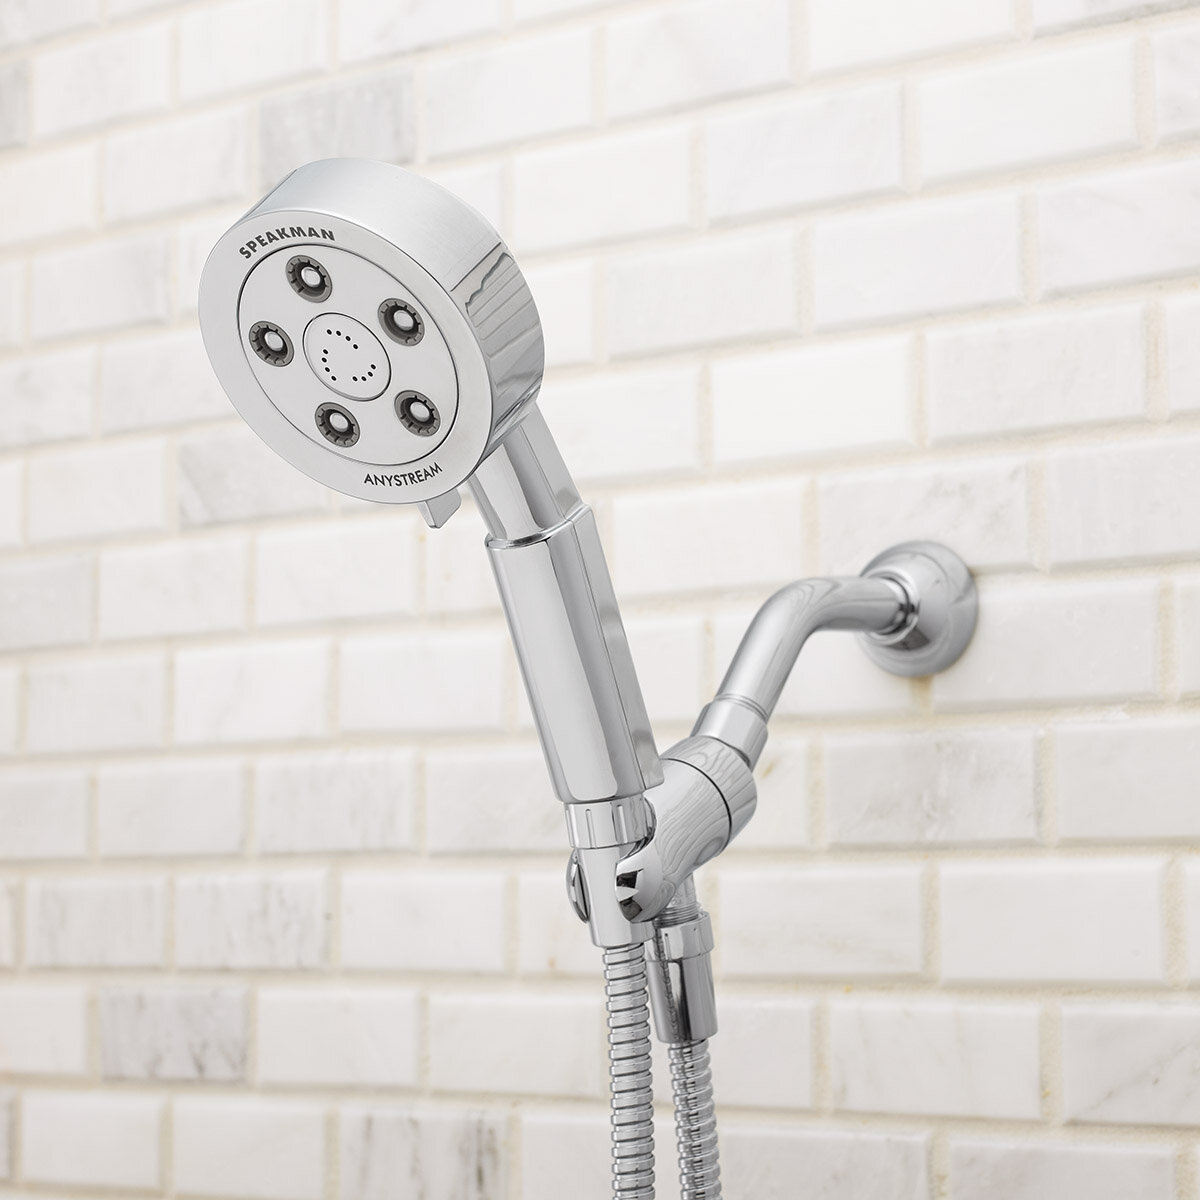 Details About Speakman Neo 2 5 Gpm Multi Function Handheld Shower Head Polished Chrome